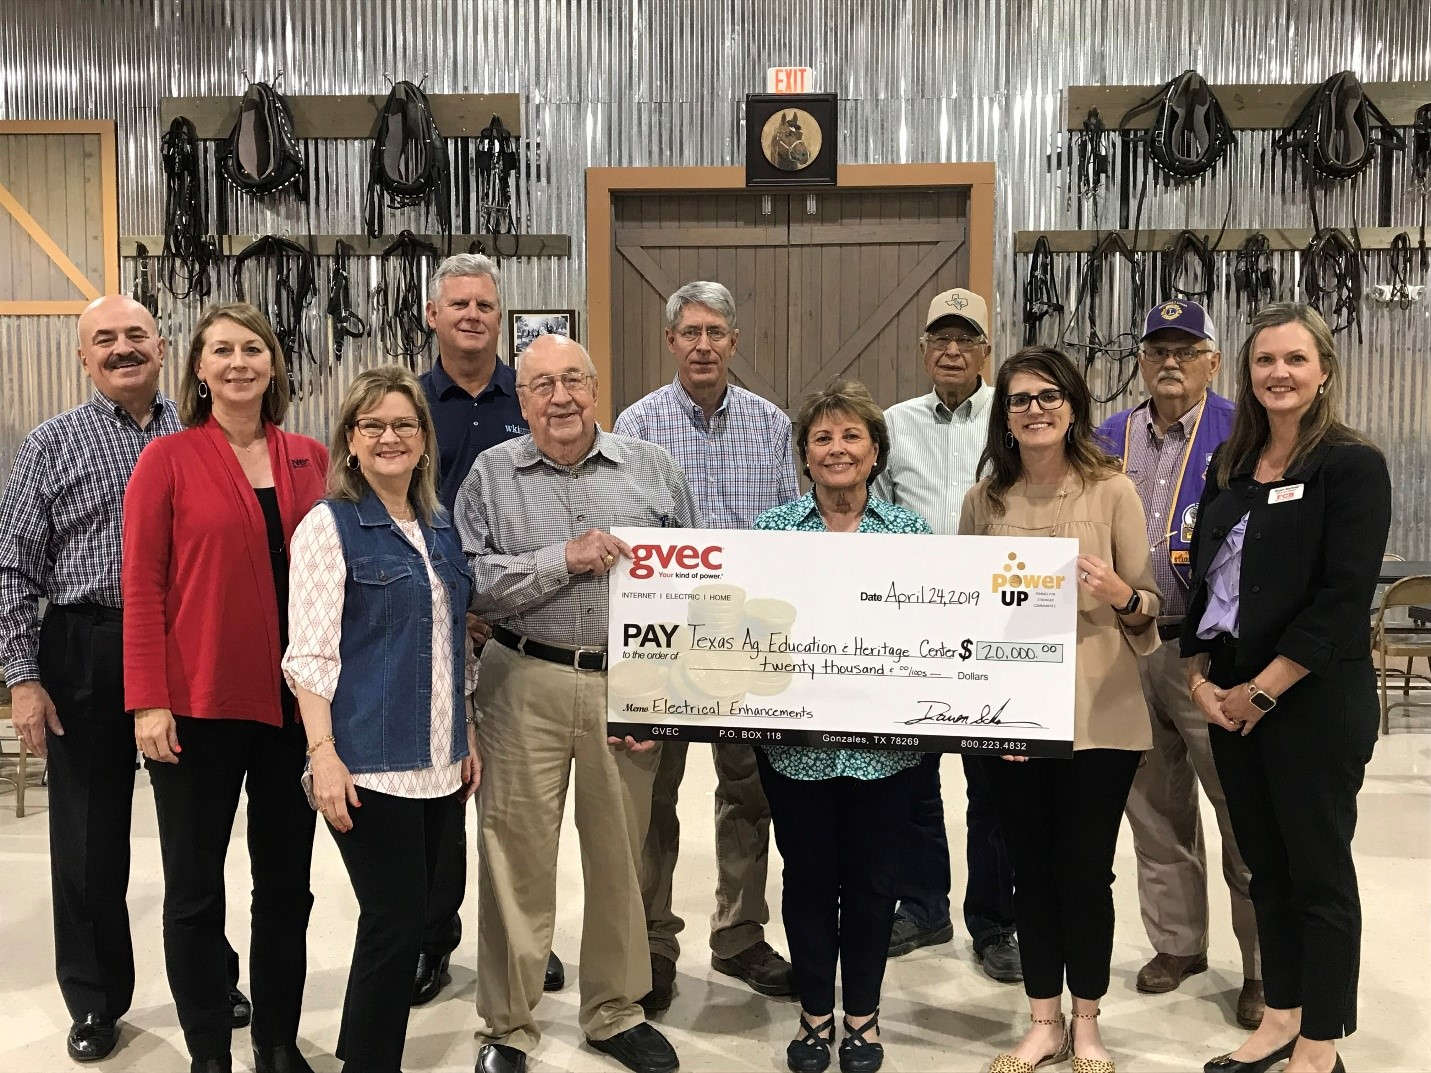 The Texas Agriculture Education and Heritage Center, Seguin, accepts Power Up grant for $20,000.